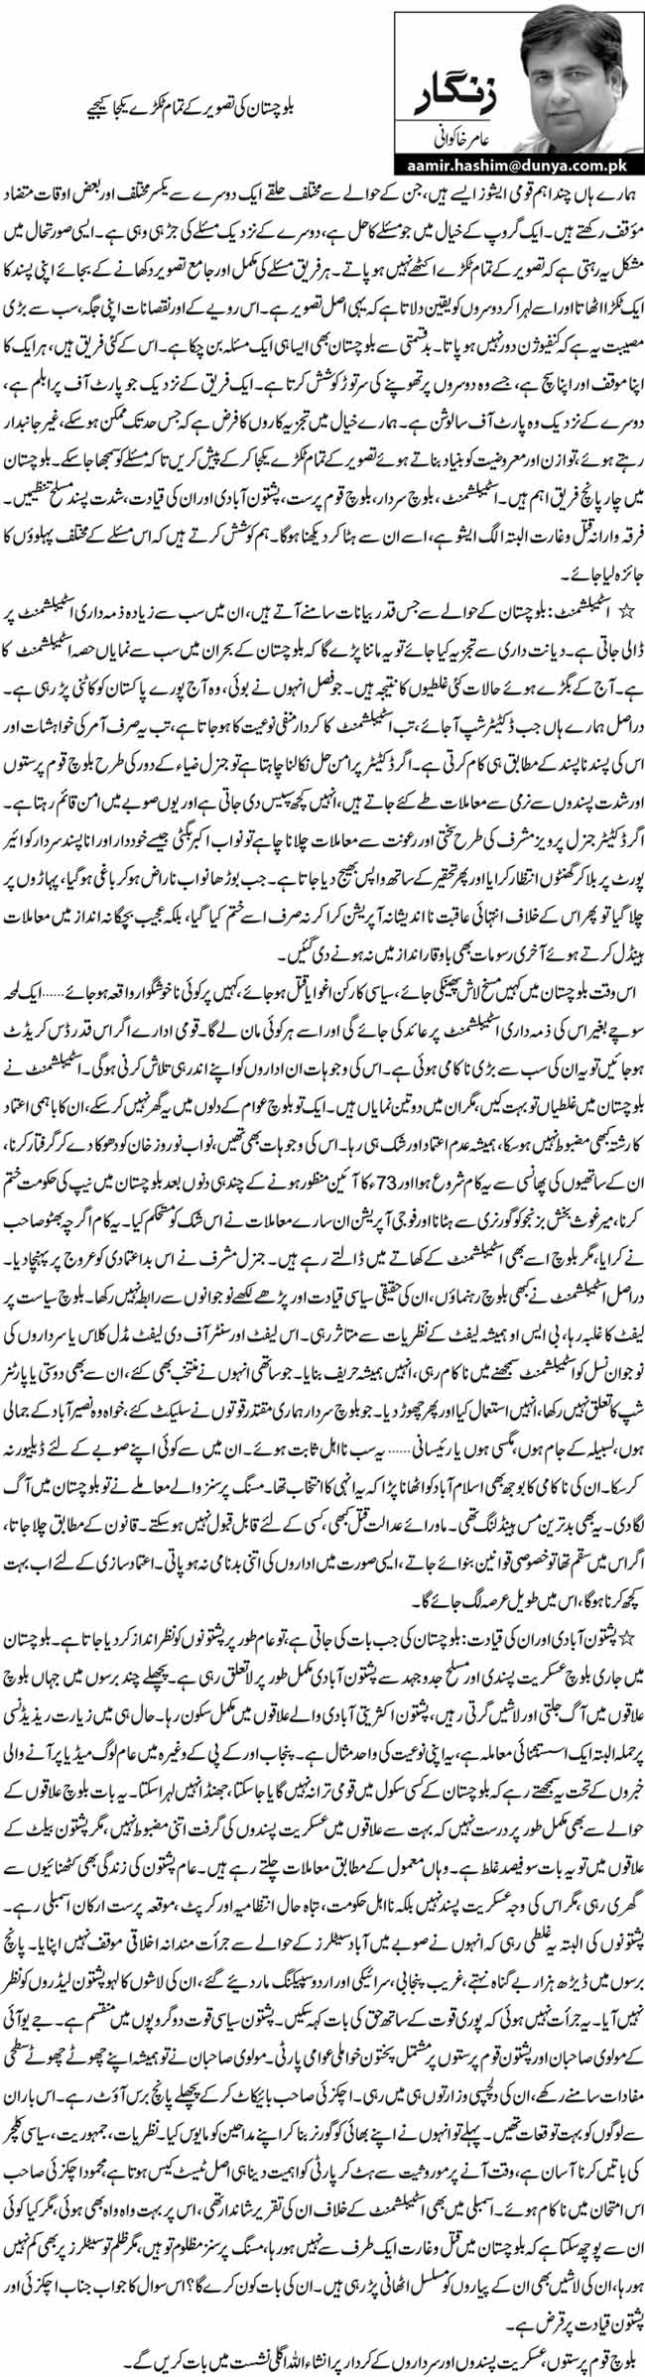 Unite all parts of Balochistan Issue